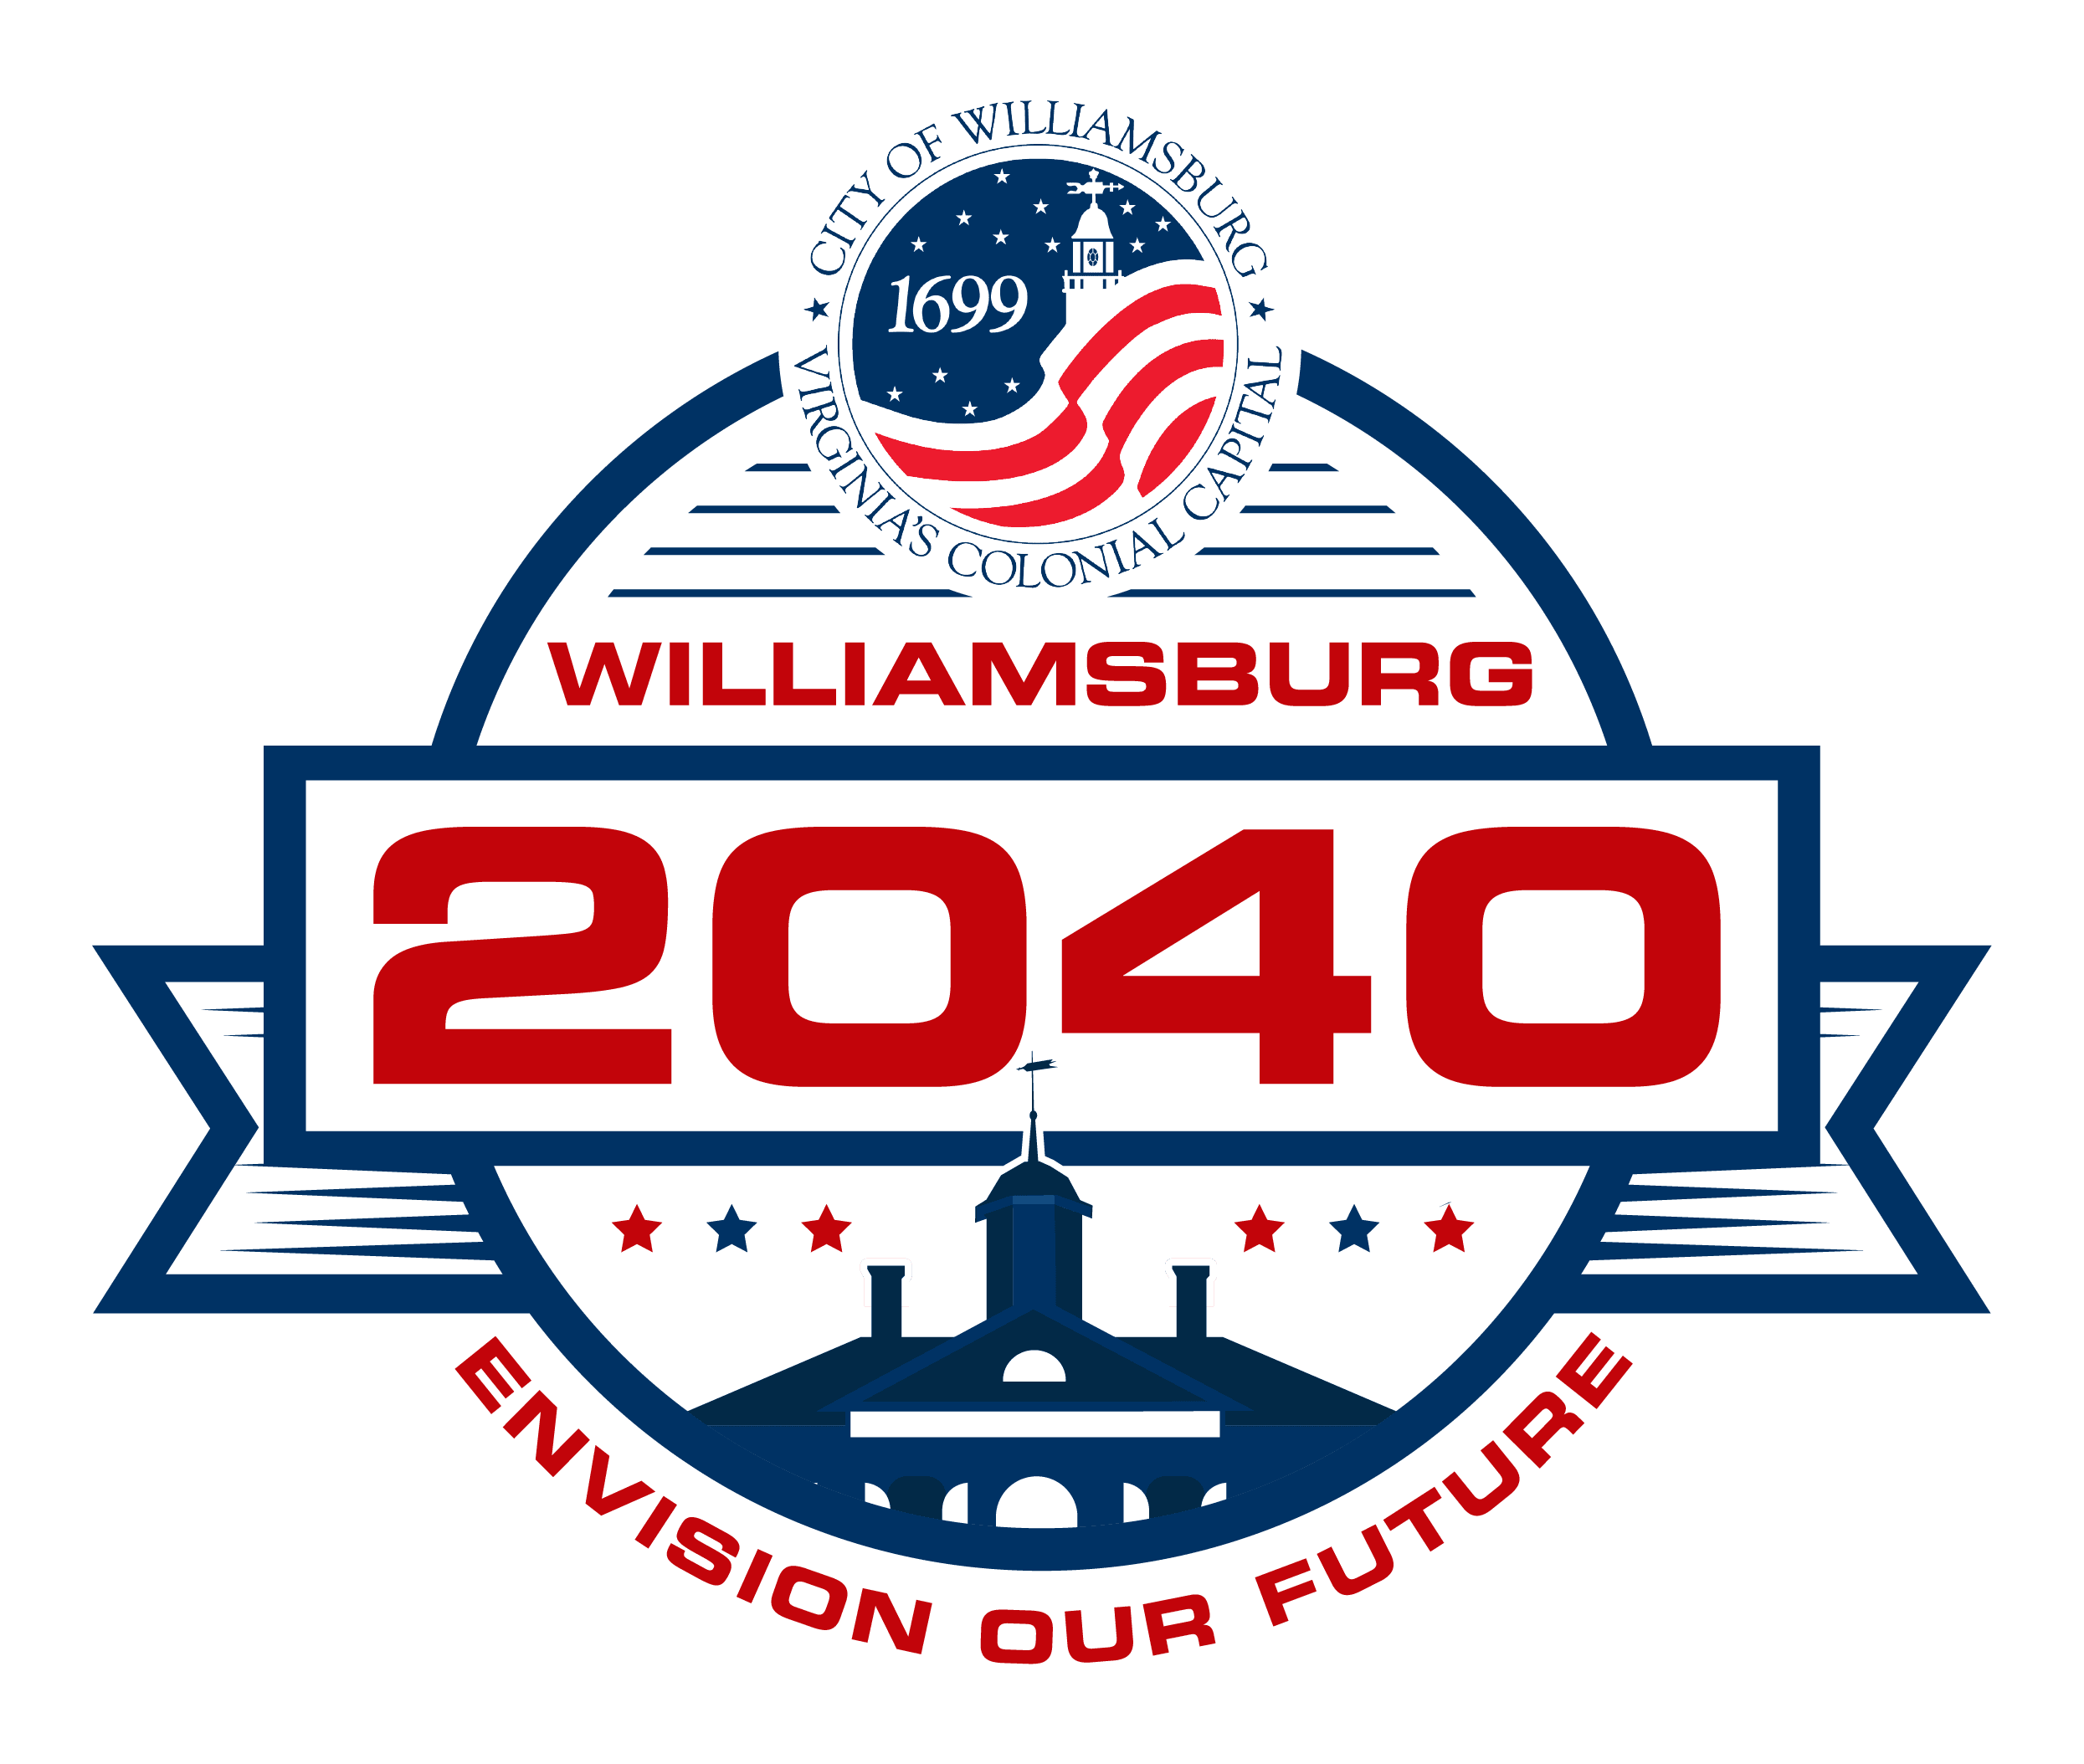 Williamsburg 2040 Envision Our Future-Logo-PNG-01